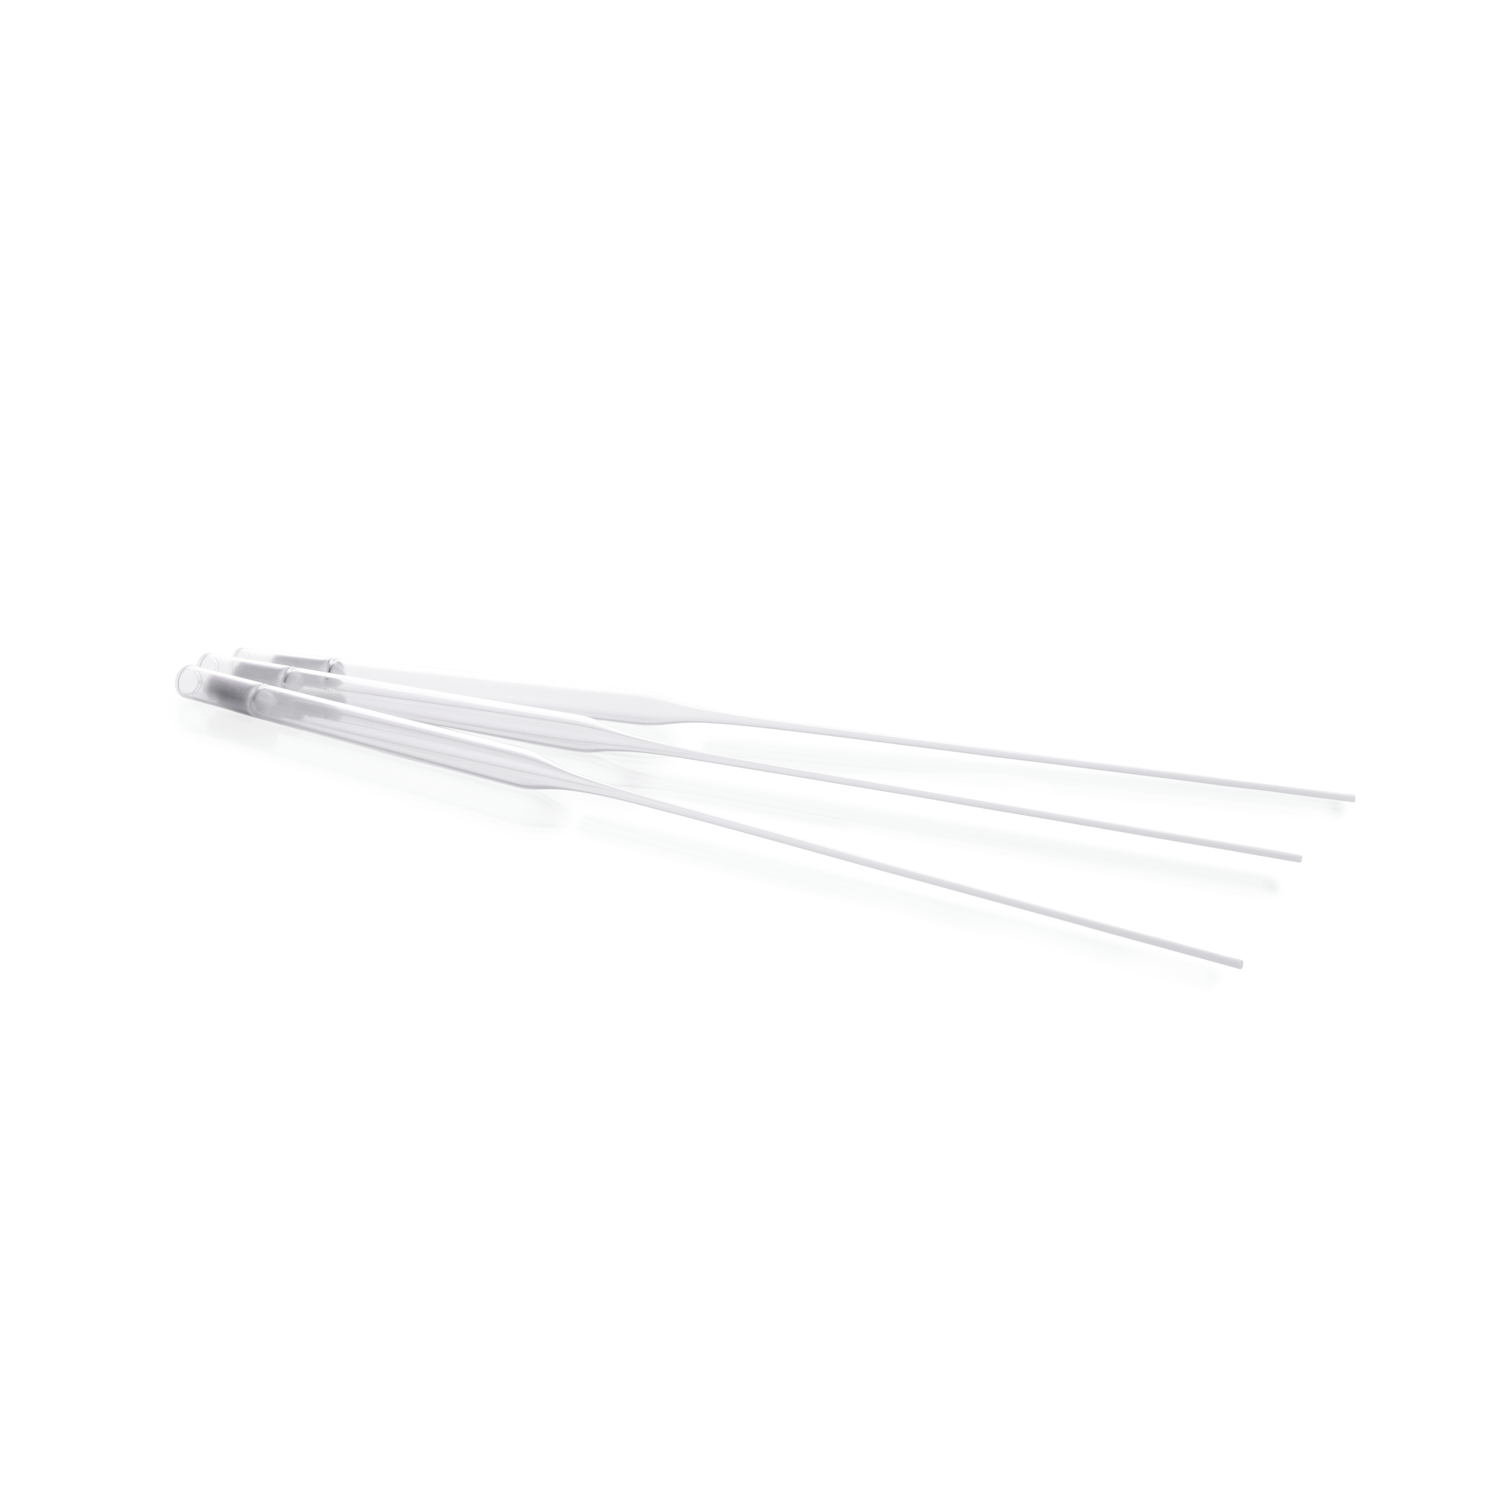 KIMBLE® Disposable Soda Lime Pasteur Pipette, Plugged, 5.75 in